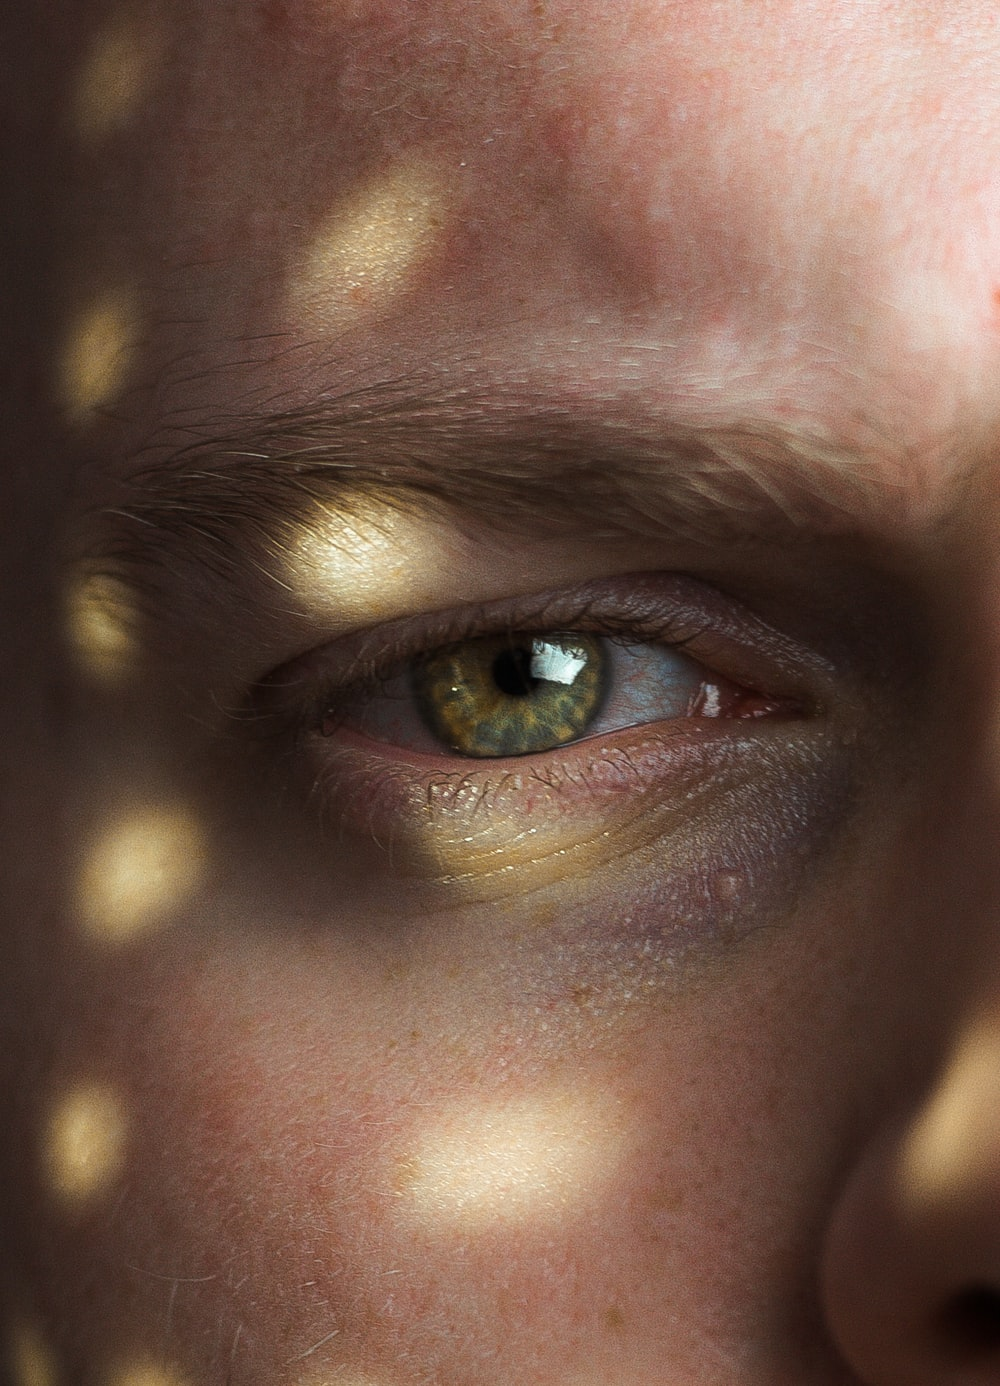 persons eye with brown eyes